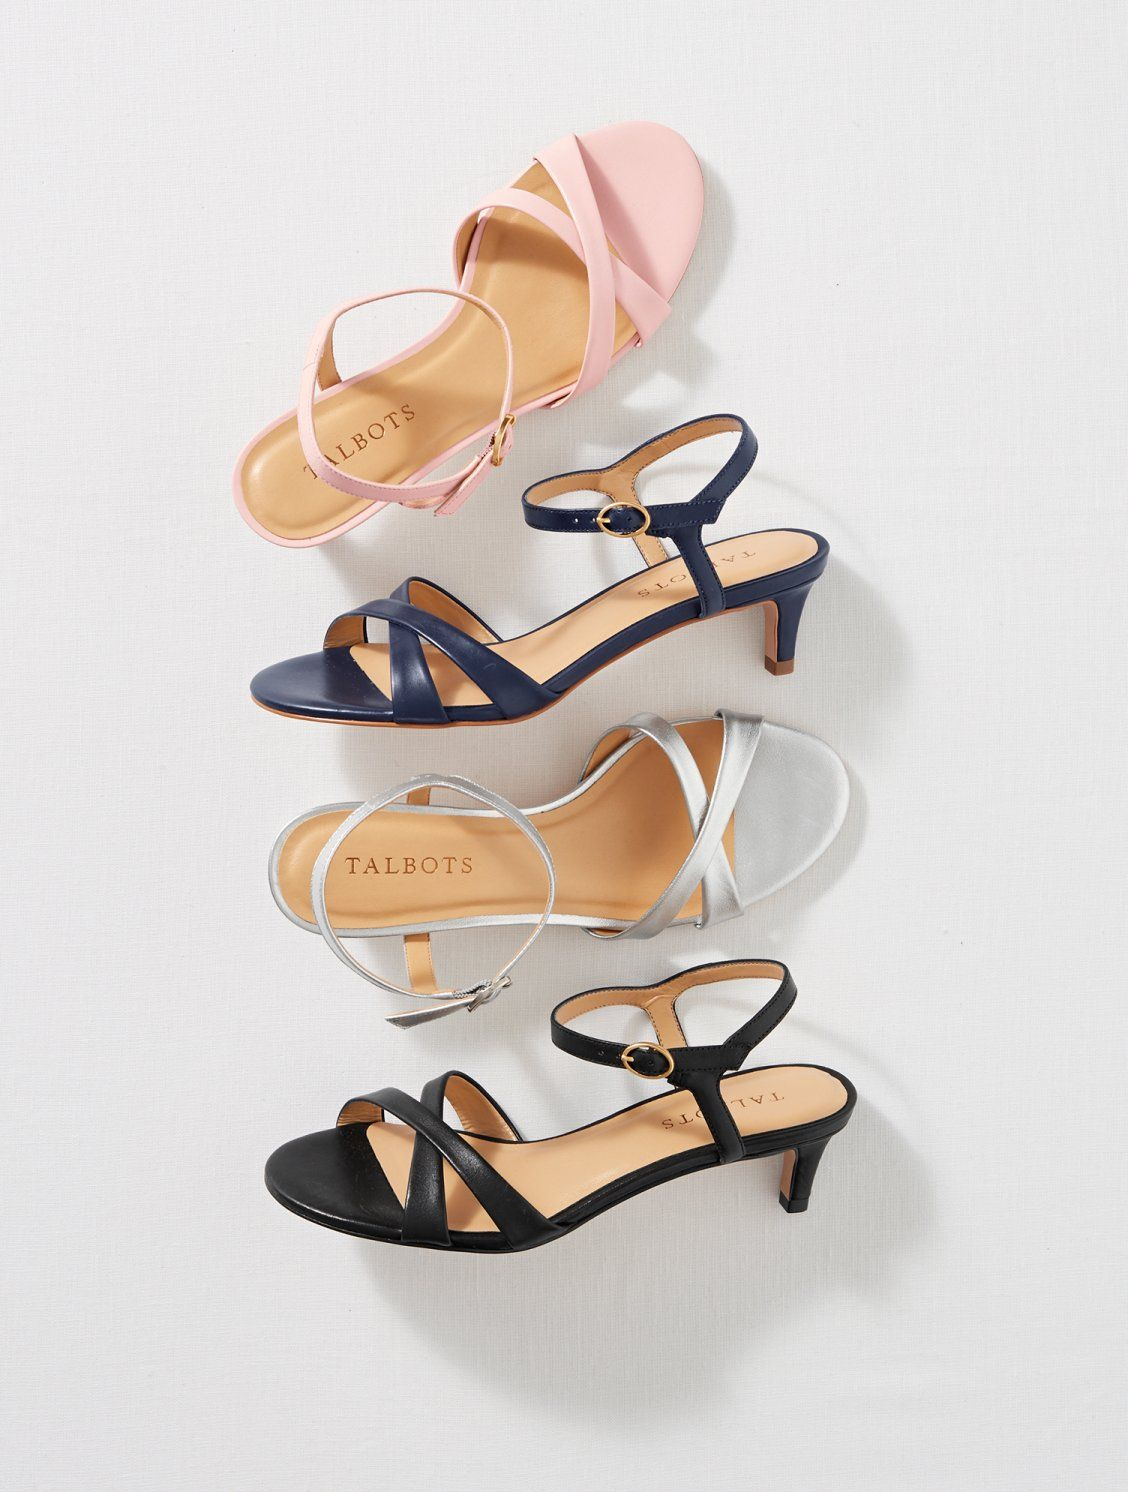 This Soft Strappy Sandal Is The Definition Of Simple Elegance A Modest Kitten Heel And Memory F Womens Shoes Wedges Bridal Shoes Low Heel Strap Sandals Women